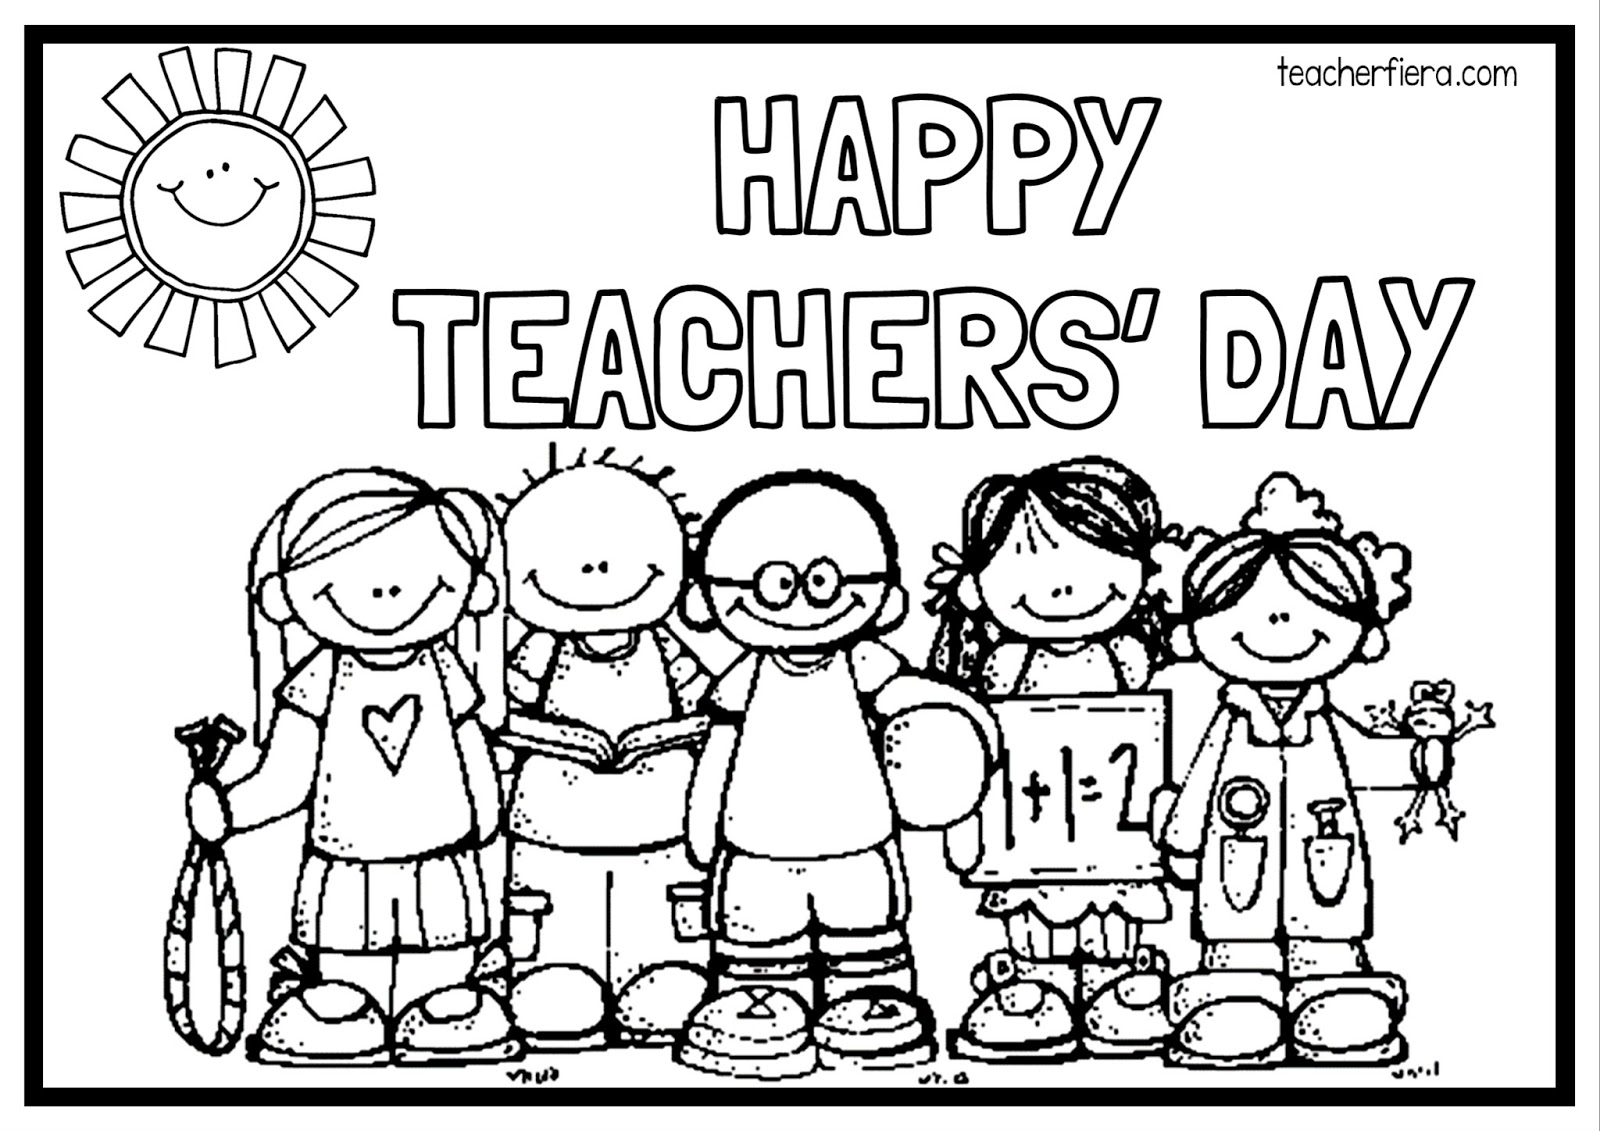 Teacherfiera Happy Teachers Day Colouring